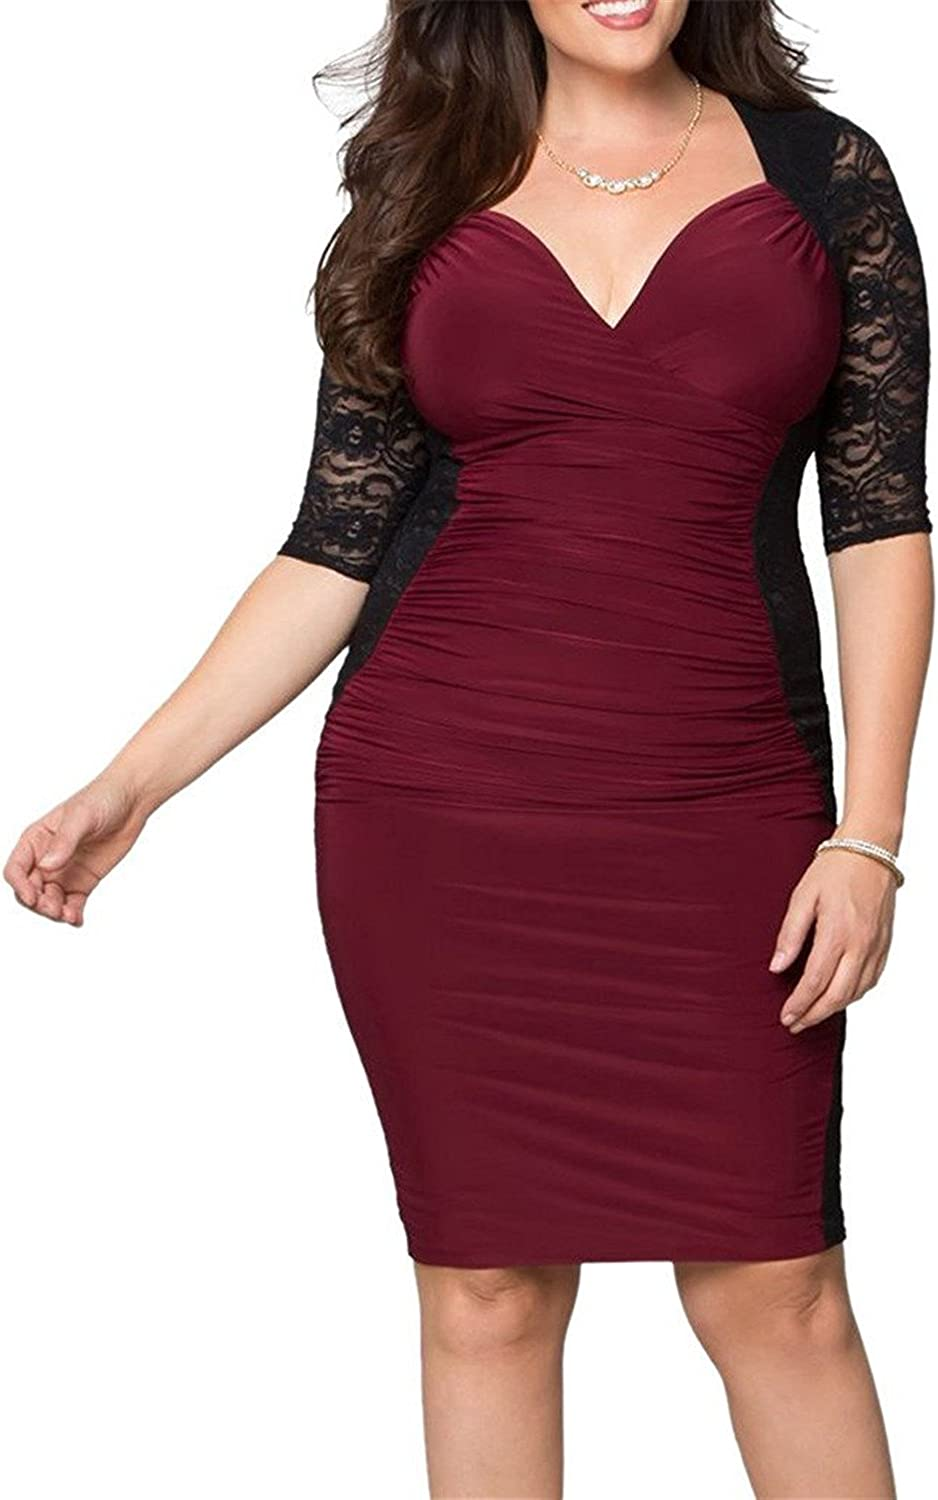 Tobyak Women's V Neck Plus Size Knee Length Bodycon Dress popular.